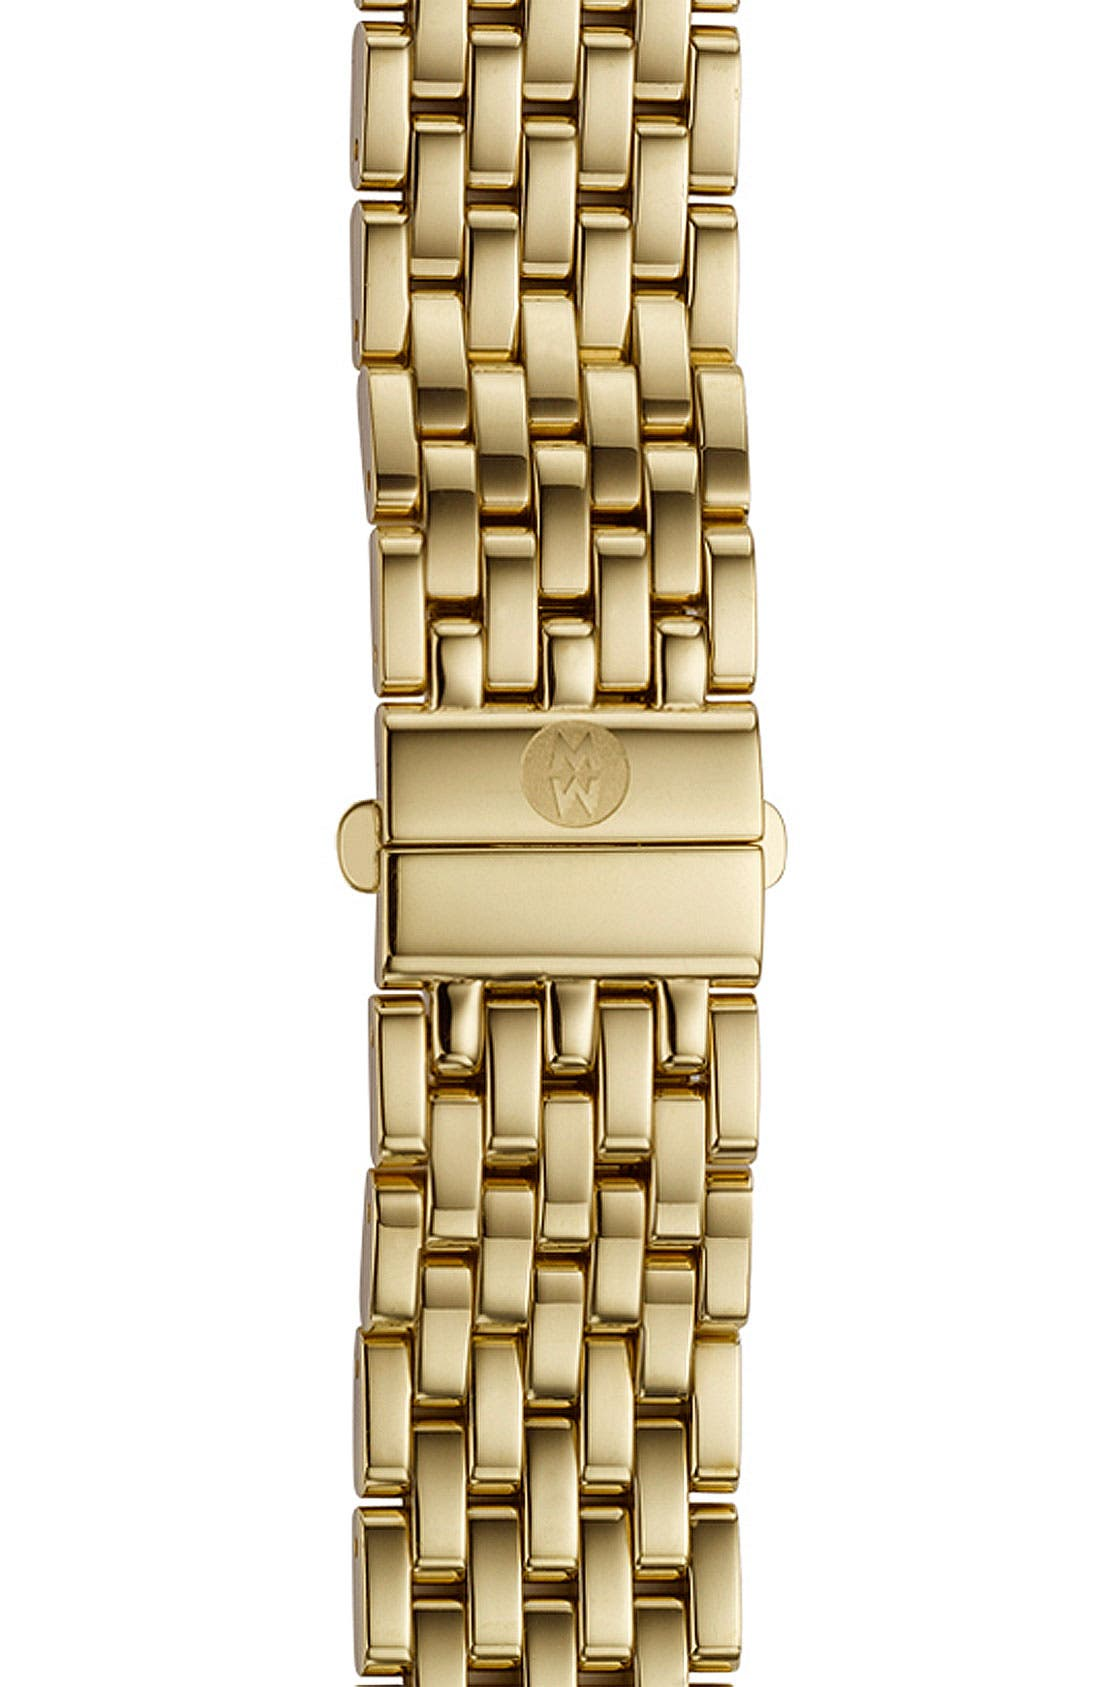 Main Image - MICHELE Deco 16 16mm Gold Plated Bracelet Watchband